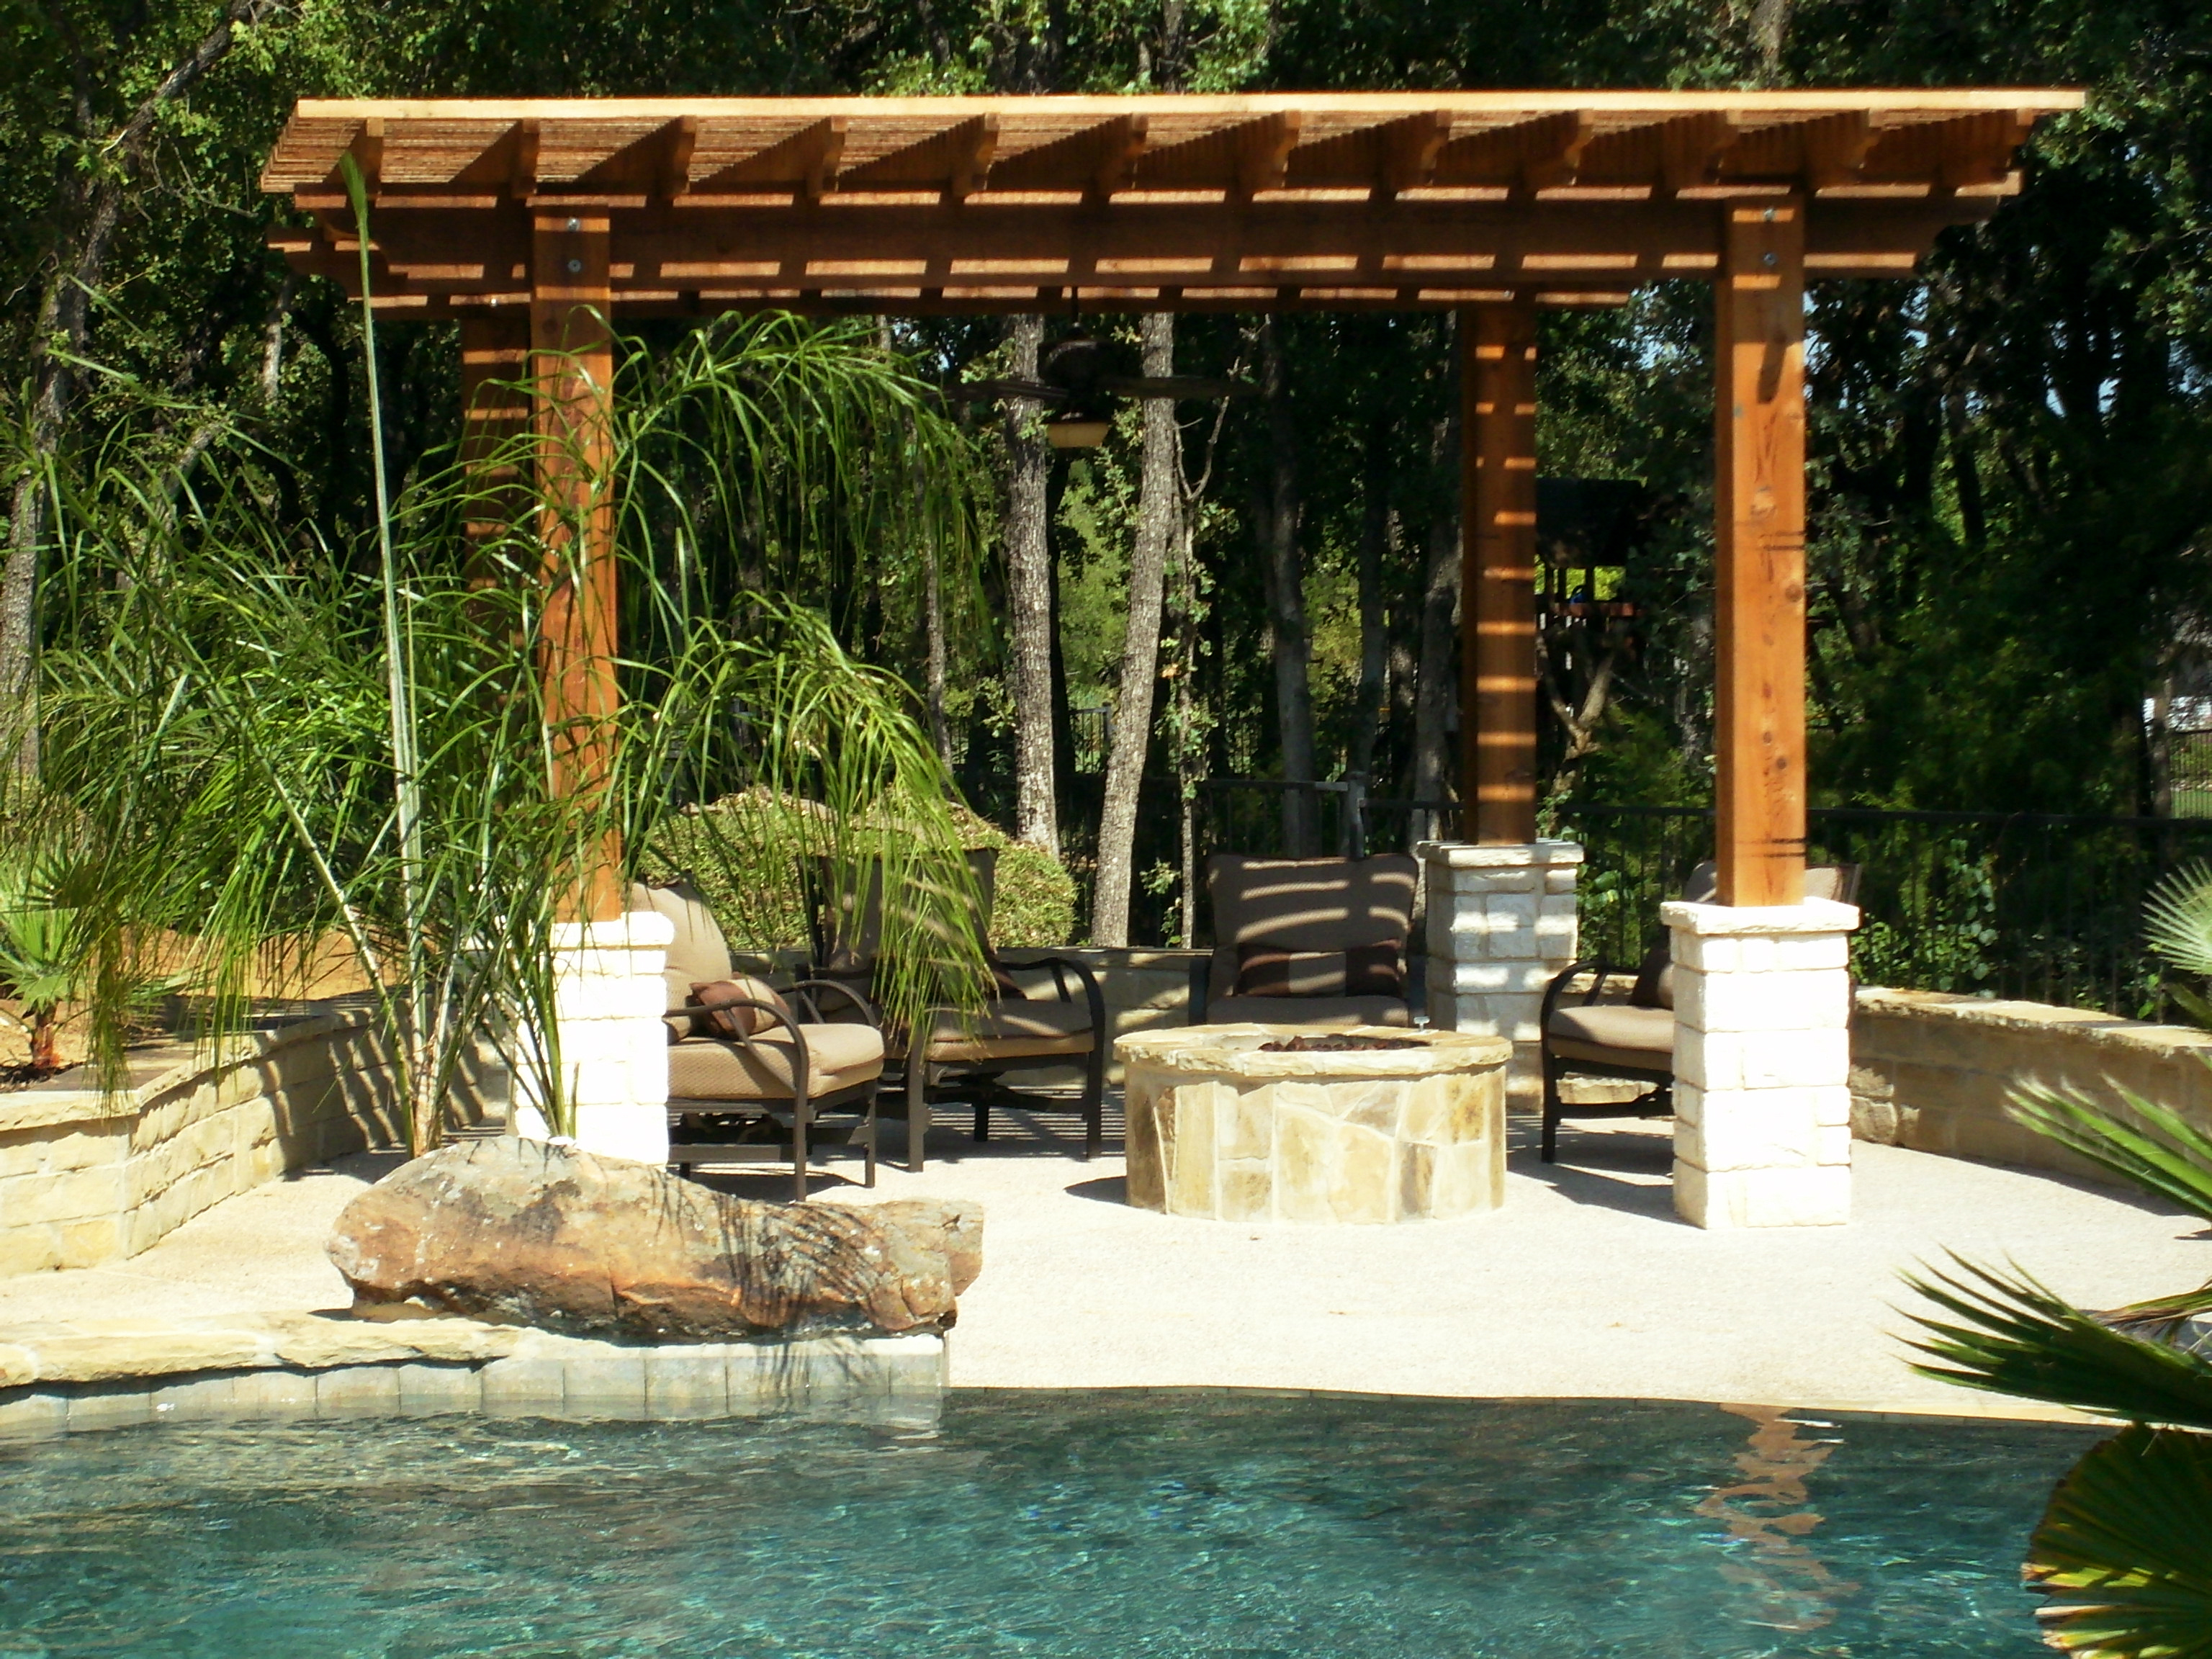 Pergola mckinney texas flickr photo sharing for Public swimming pools in mckinney tx